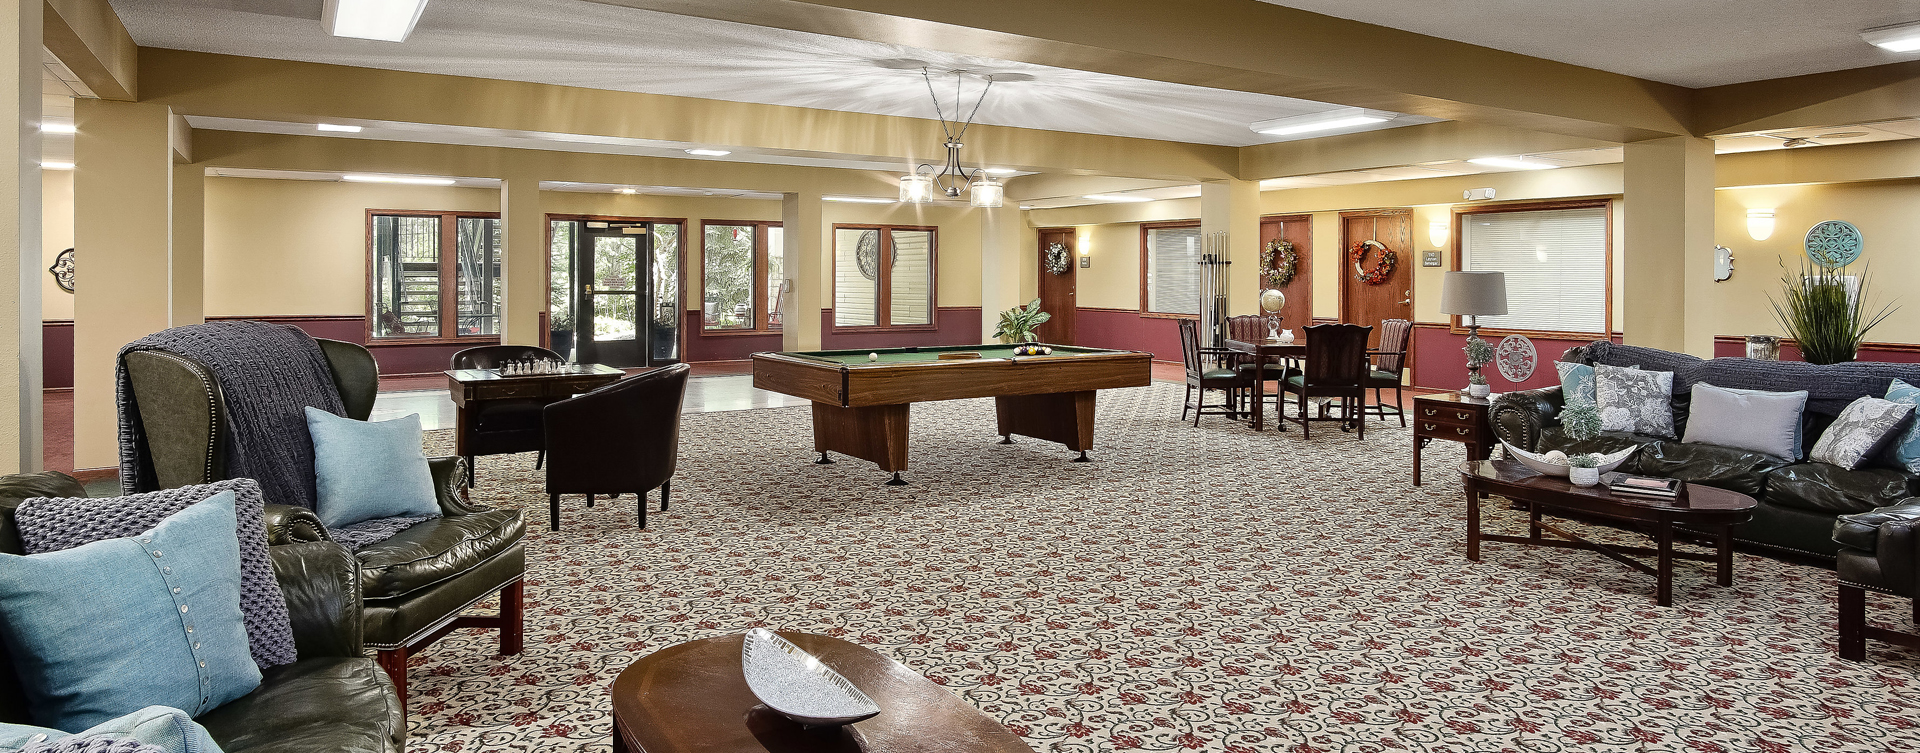 Enjoy a game of pool with friends at Bickford of Raytown